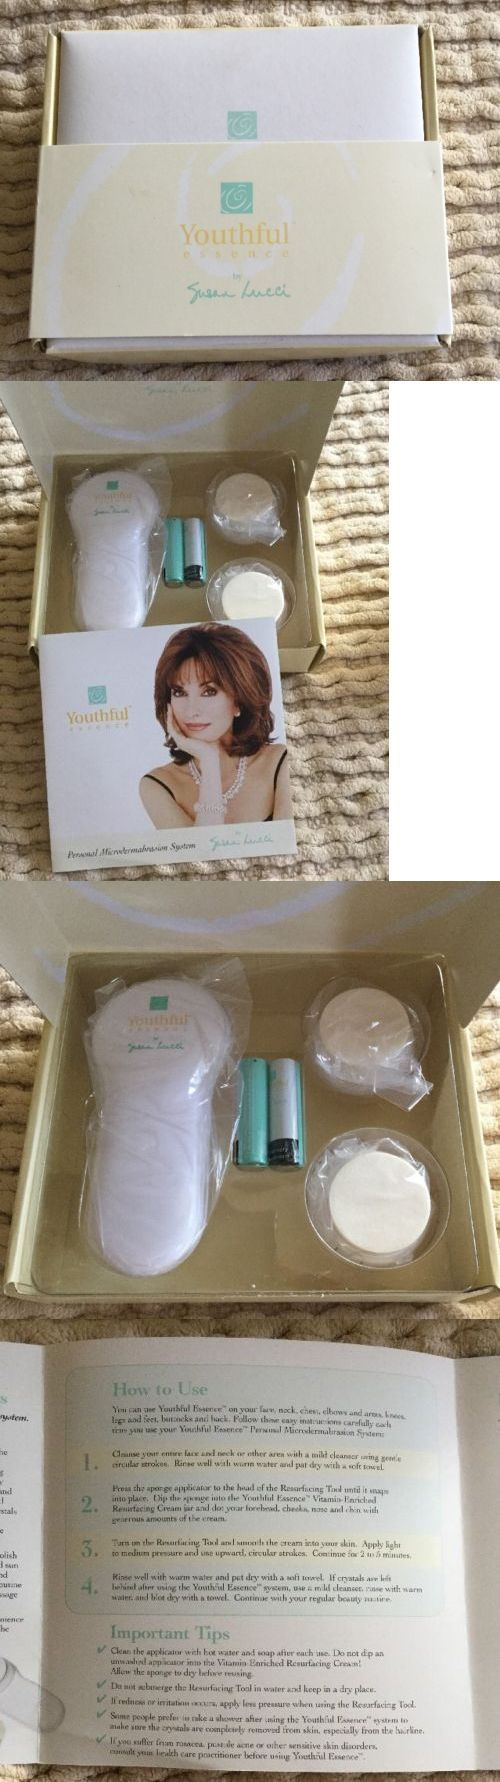 Microdermabrasion Tools: (2274) Youthful Essence By Susan Lucci Personal Microdermabrasion System New Nib -> BUY IT NOW ONLY: $45.99 on eBay!